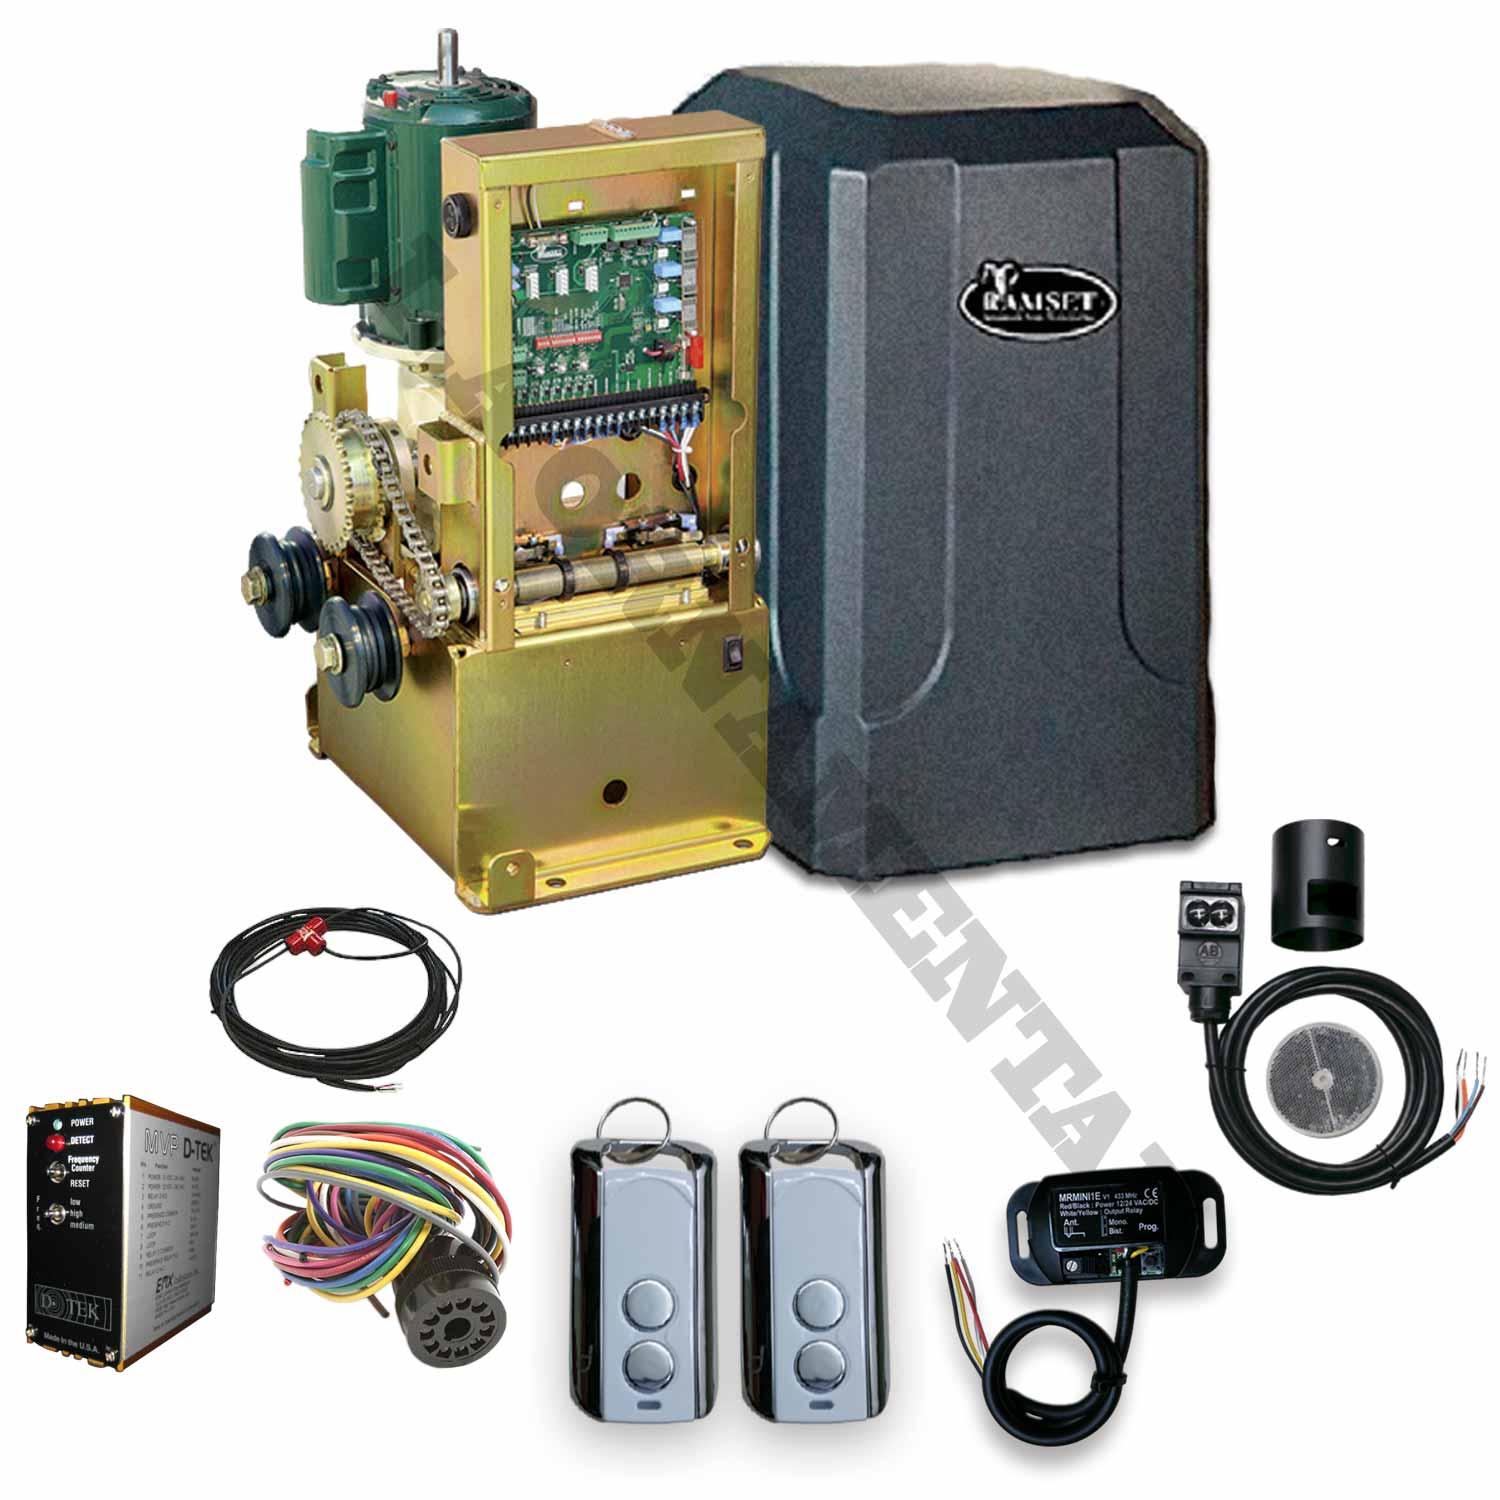 Ramset gate openers kits slide